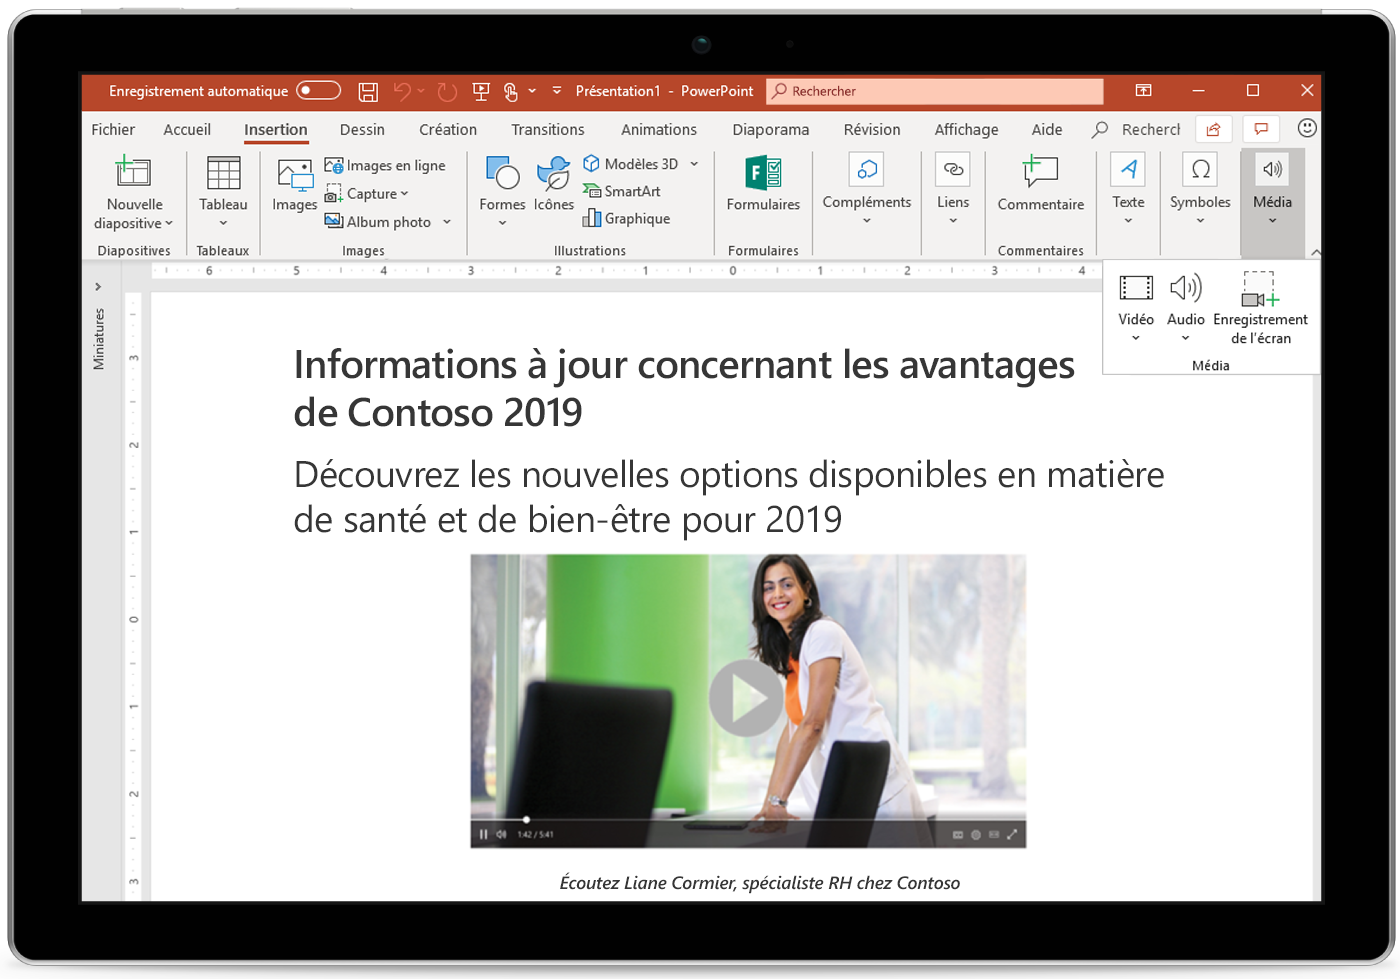 Image d'une tablette affichant une diapositive PowerPoint.